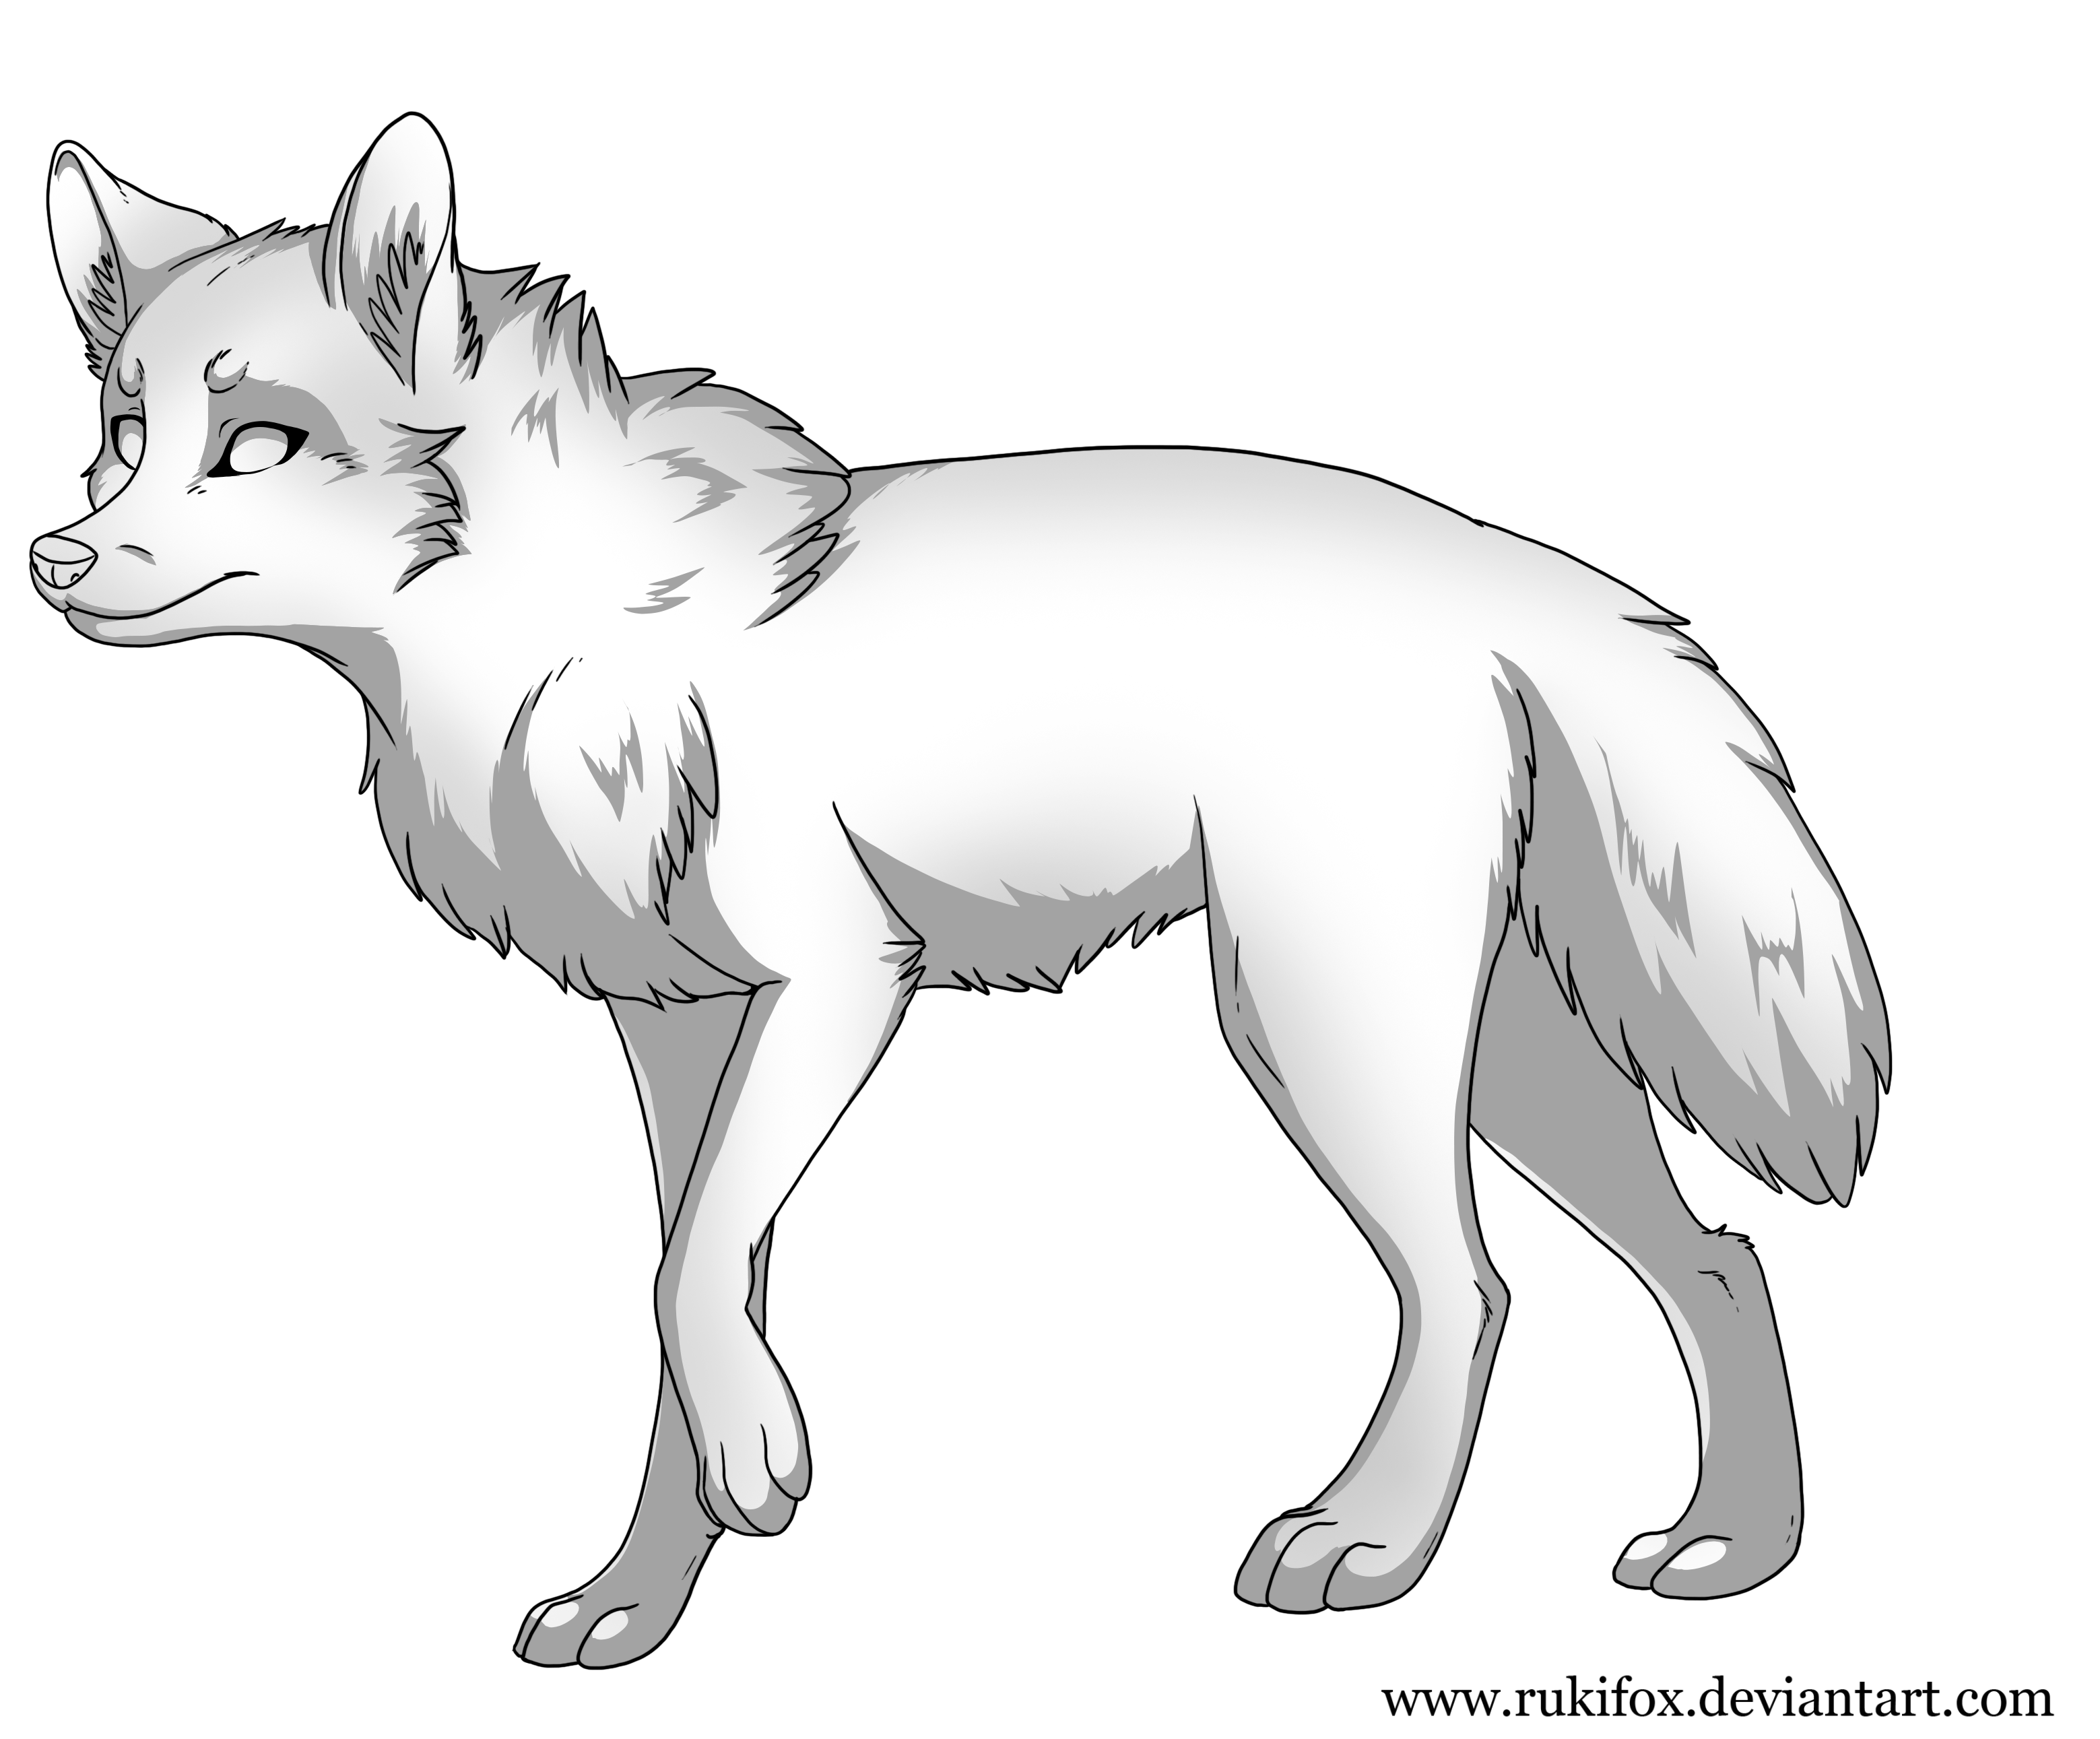 Wolf Lineart : Wolf template with shadow by rukifox on deviantart